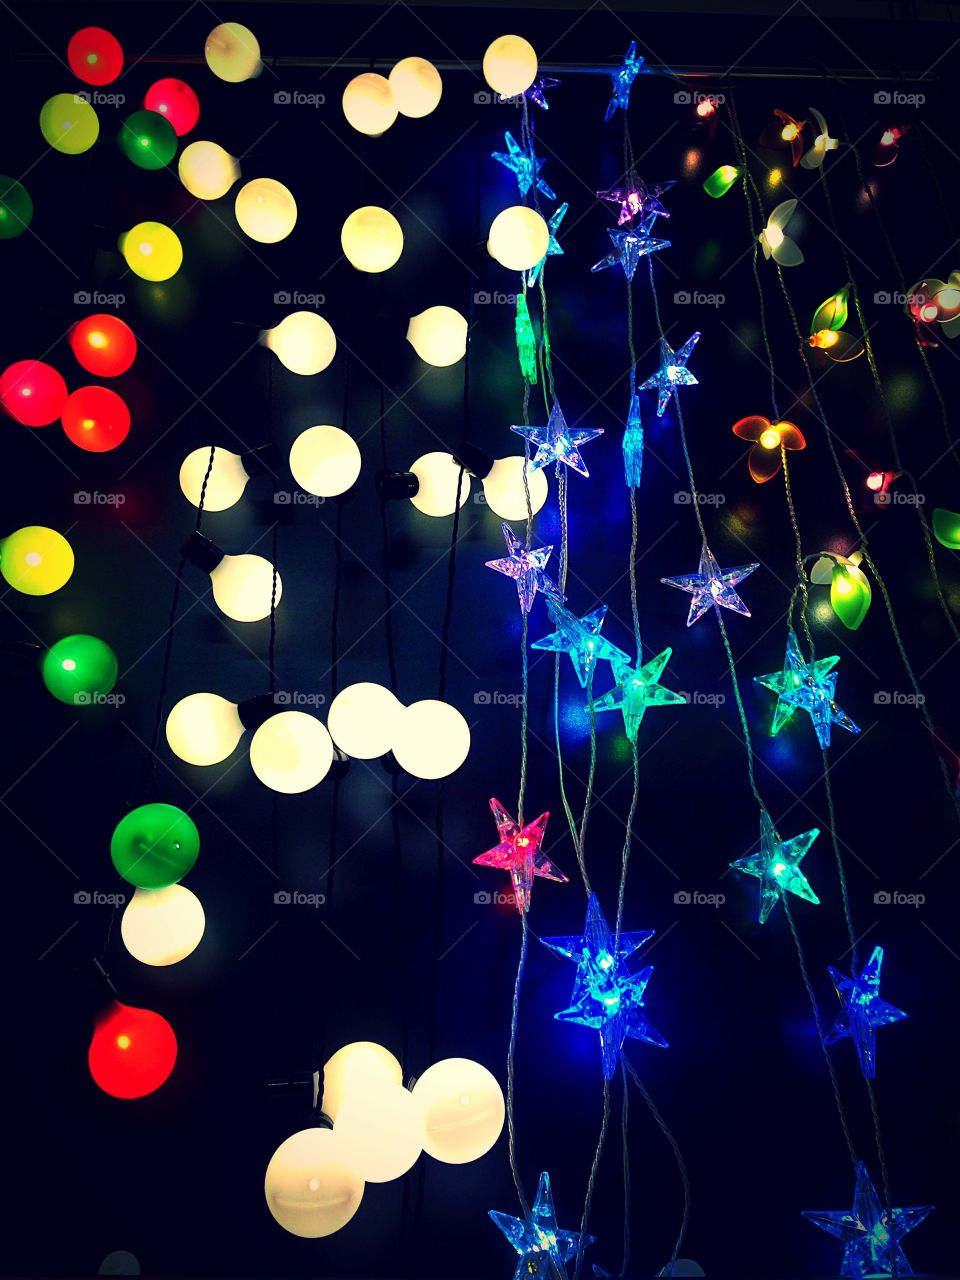 A mix of different colourful party celebration lighting